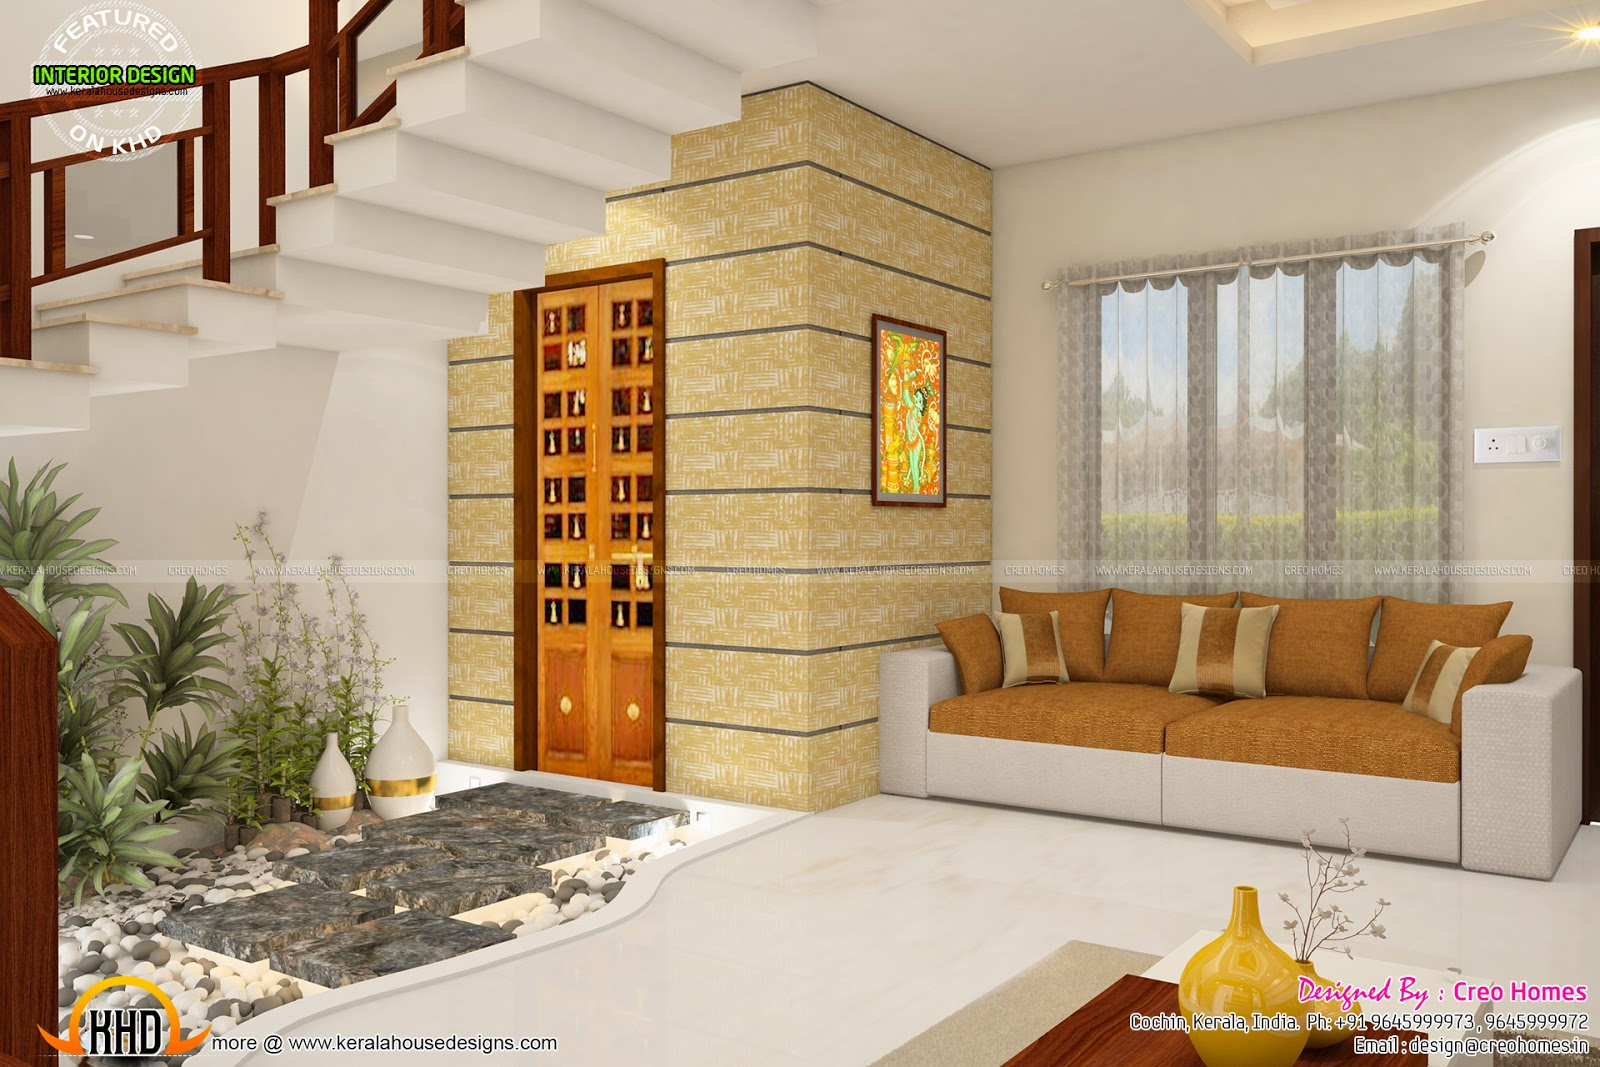 Total home interior solutions by creo homes kerala home for Kerala home interior designs photos